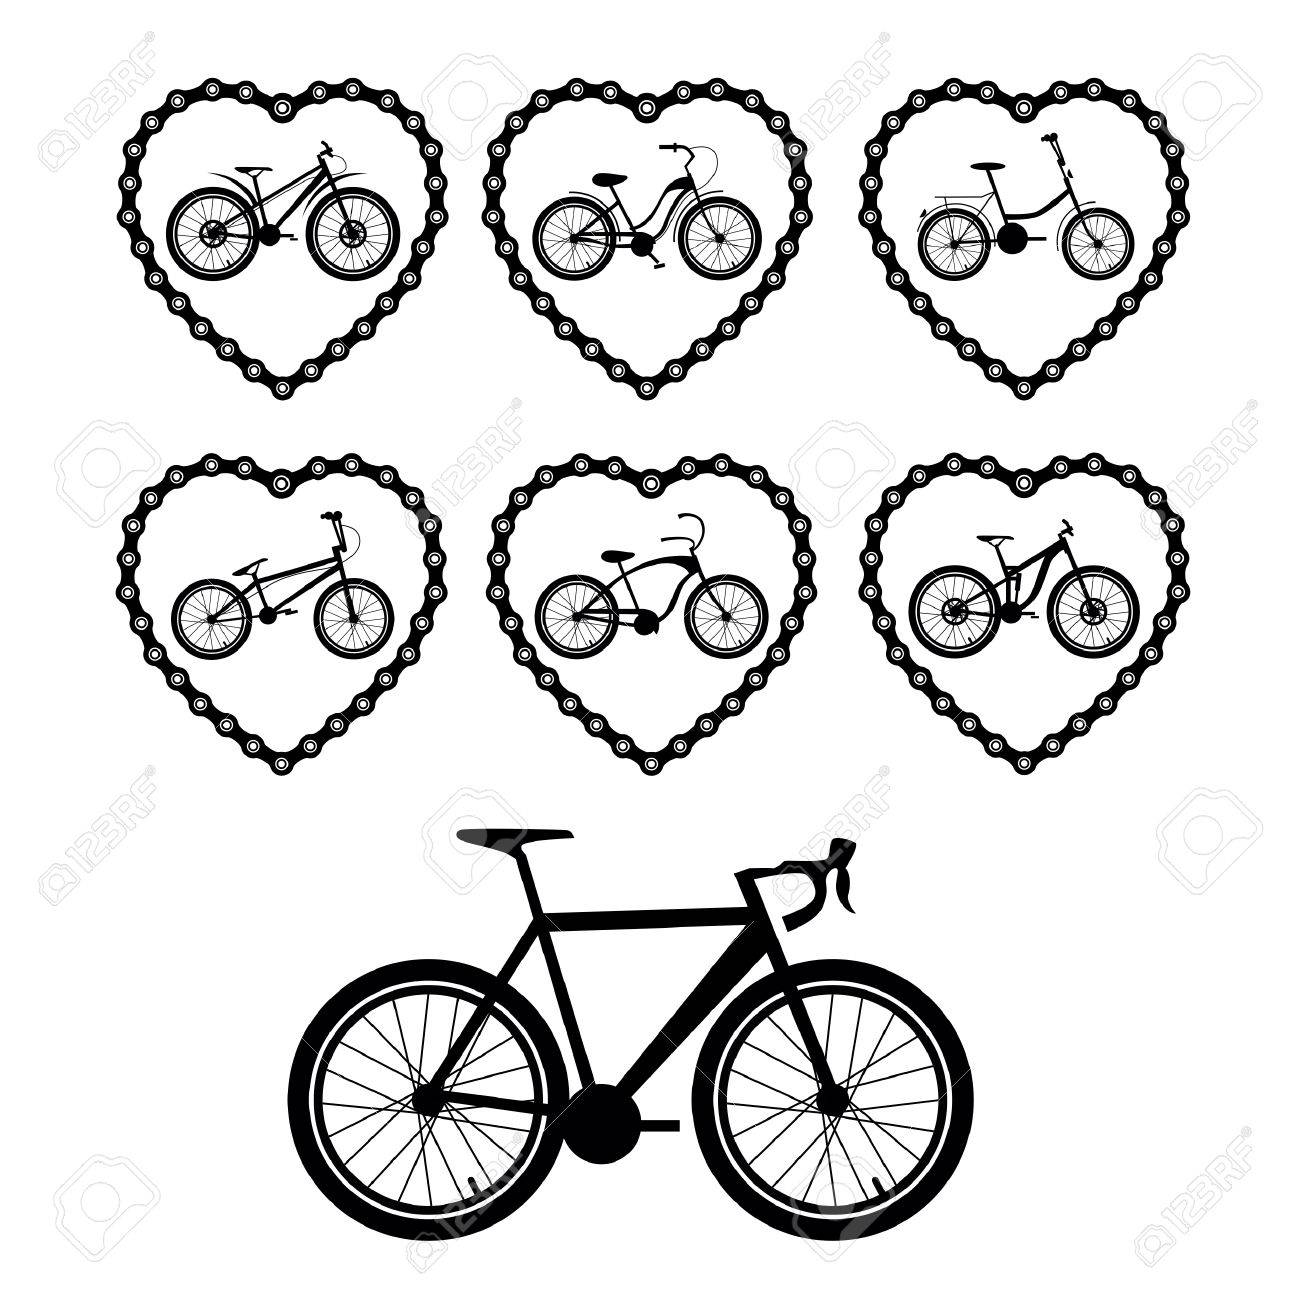 1300x1300 Set Vector Images Bicycles. Bicycle Chain In The Form